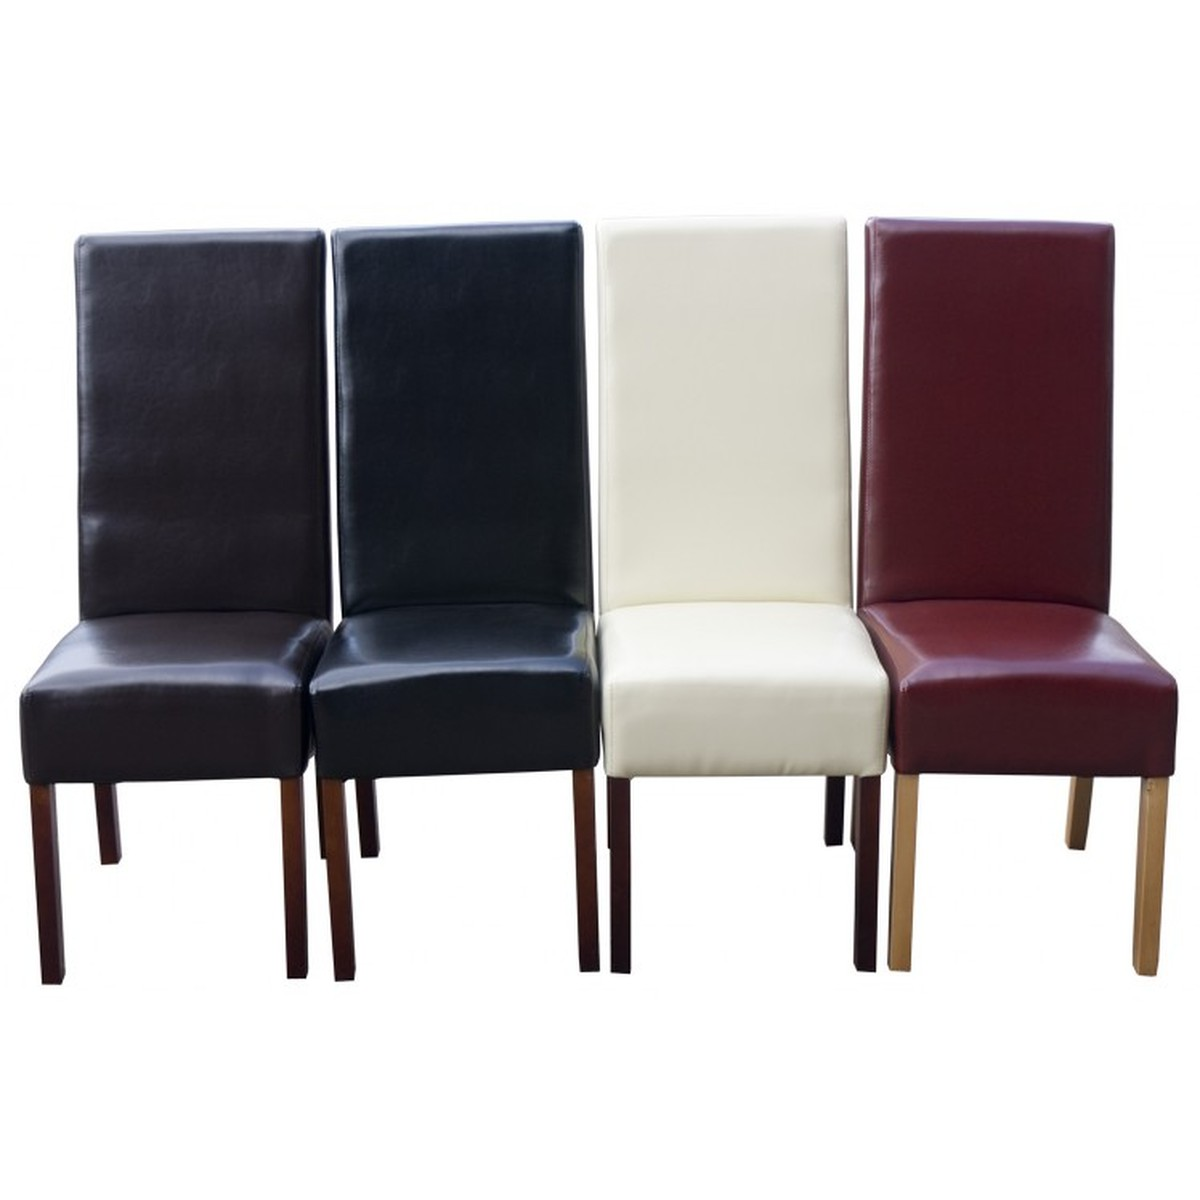 Secondhand Hotel Furniture Dining Chairs Special Offer